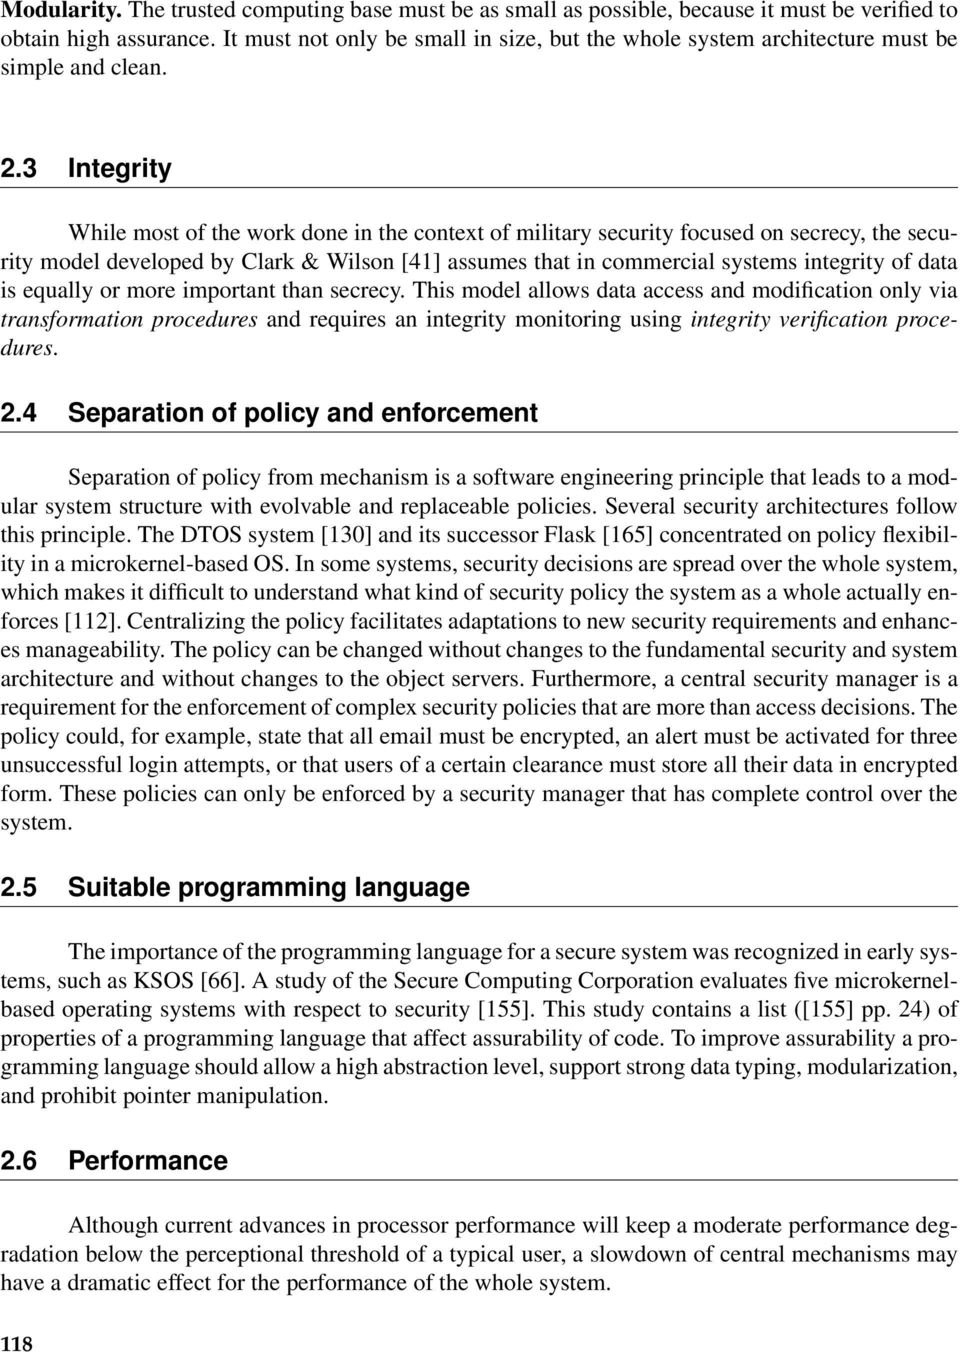 3 Integrity While most of the work done in the context of military security focused on secrecy, the security model developed by Clark & Wilson [41] assumes that in commercial systems integrity of